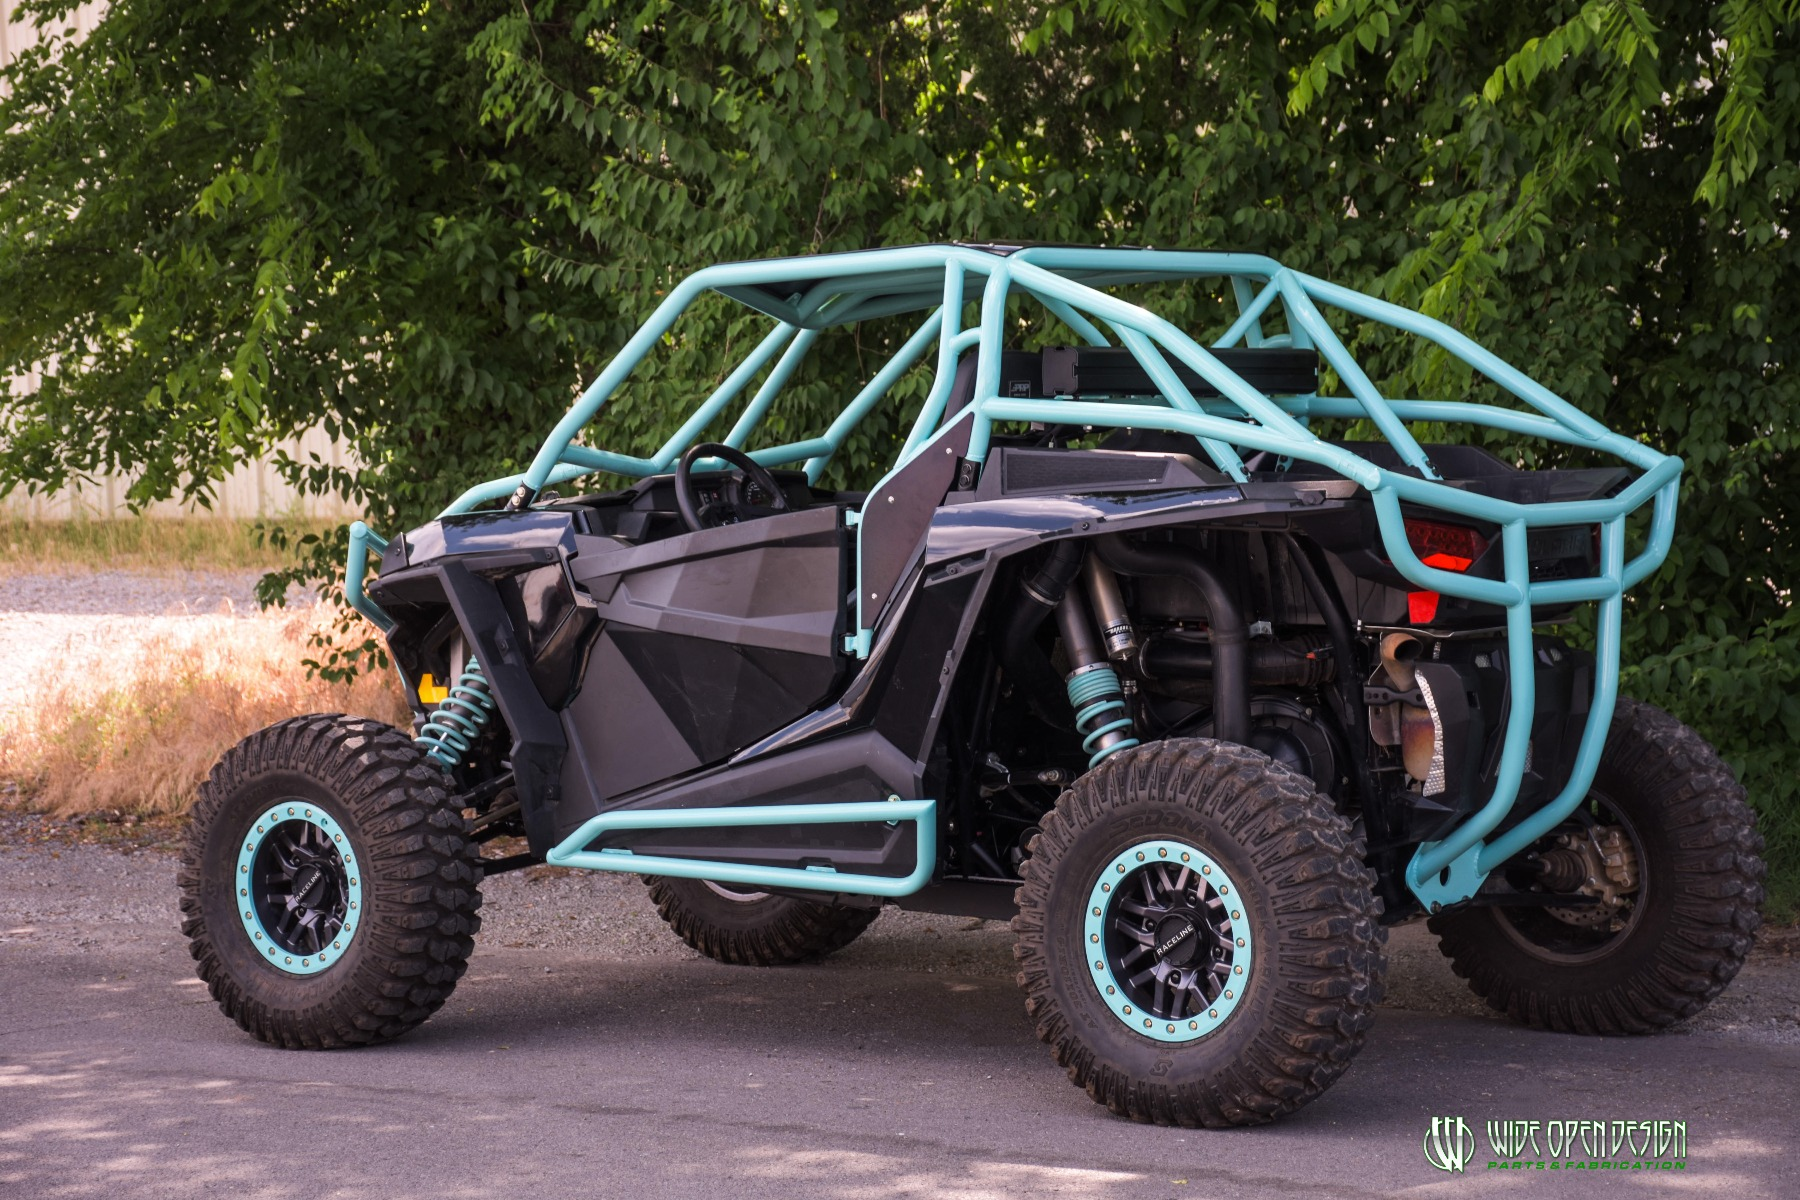 Wide Open Design UTV Cage RZR Cage Double Down featuring Double Pillars 3